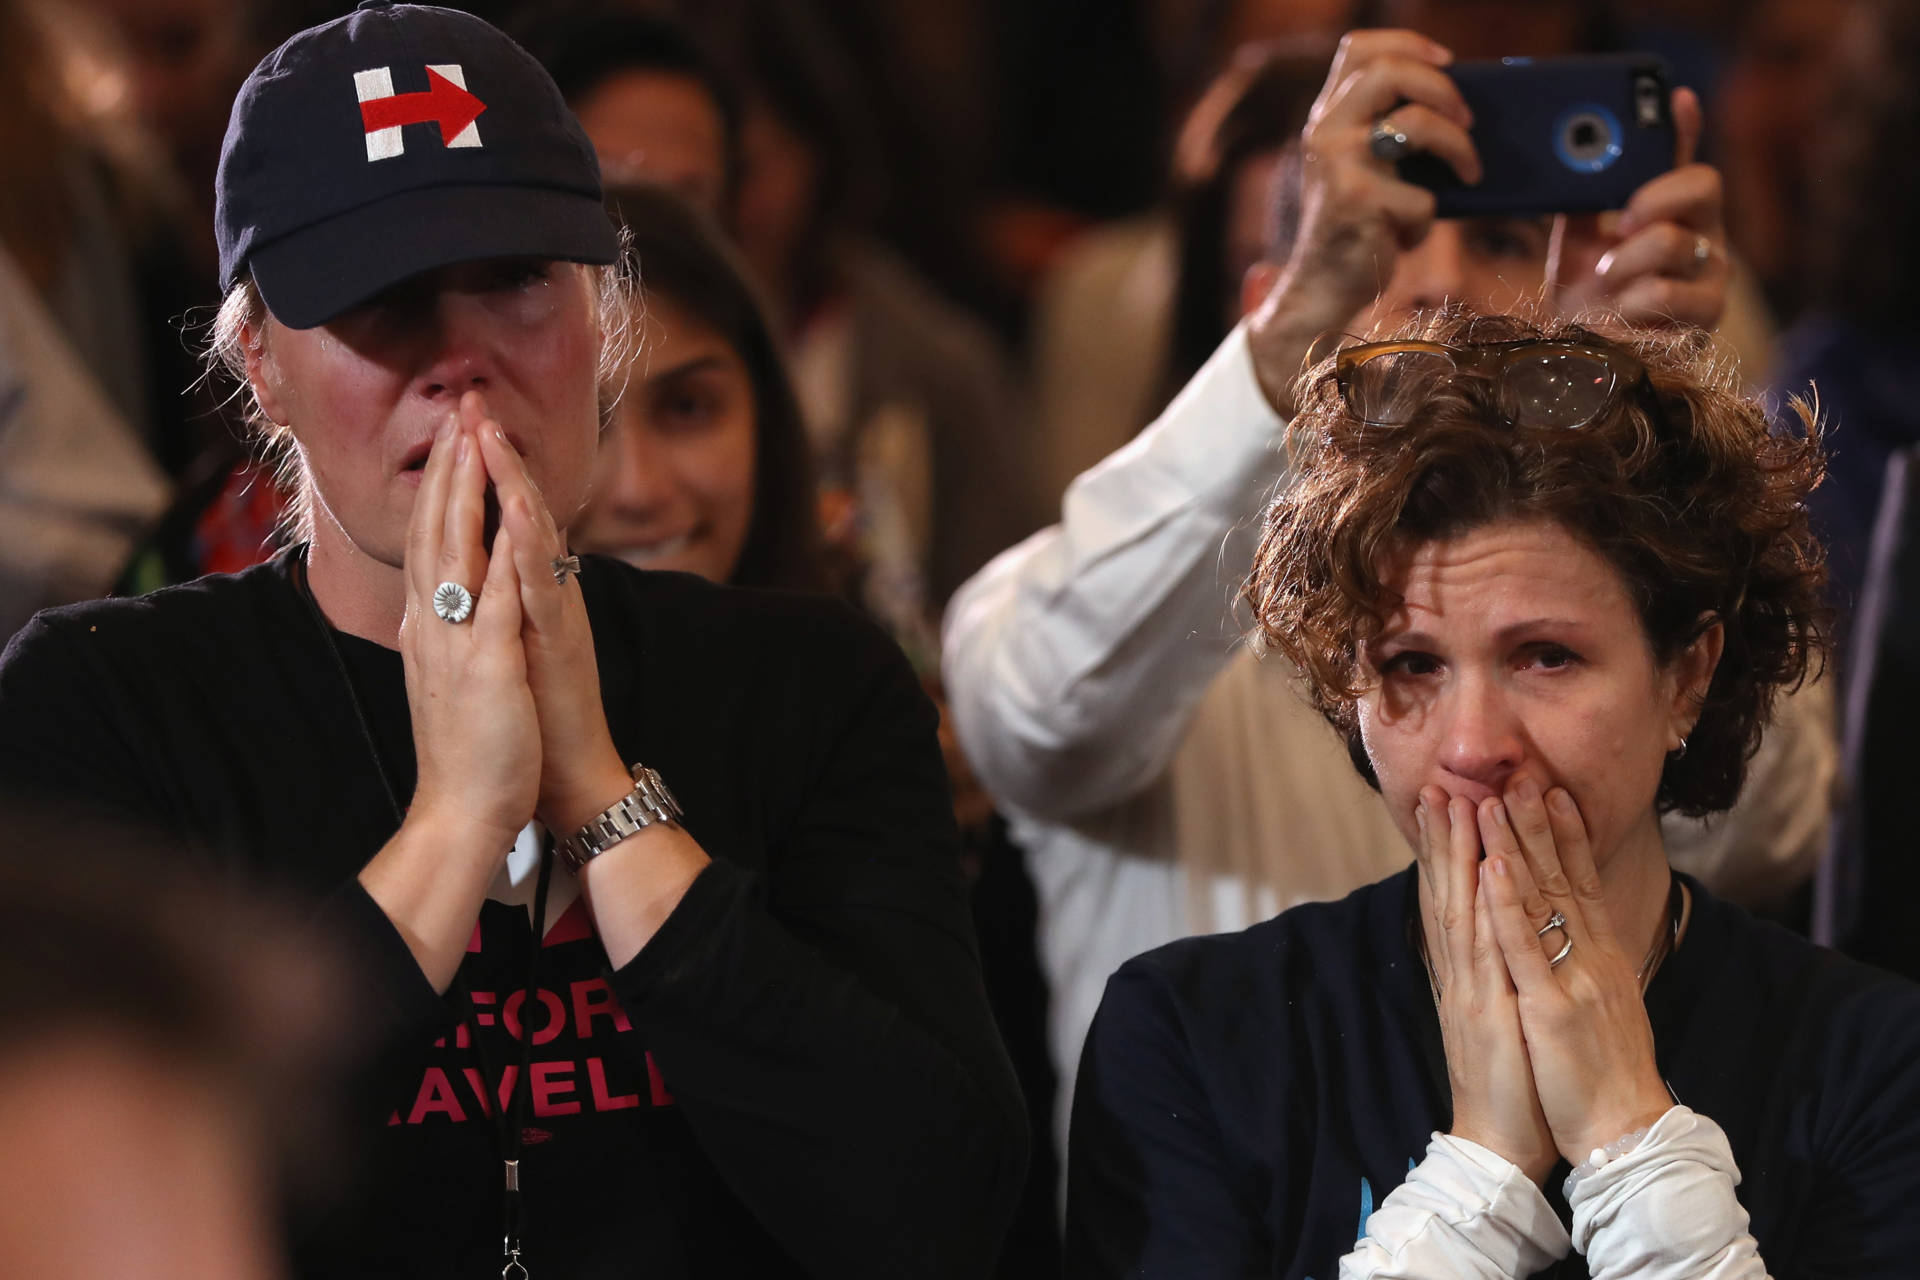 Staffers and supporters react as former Secretary of State Hillary Clinton concedes the presidential election at the New Yorker Hotel on Nov. 9, 2016, in New York City.   Justin Sullivan/Getty Images